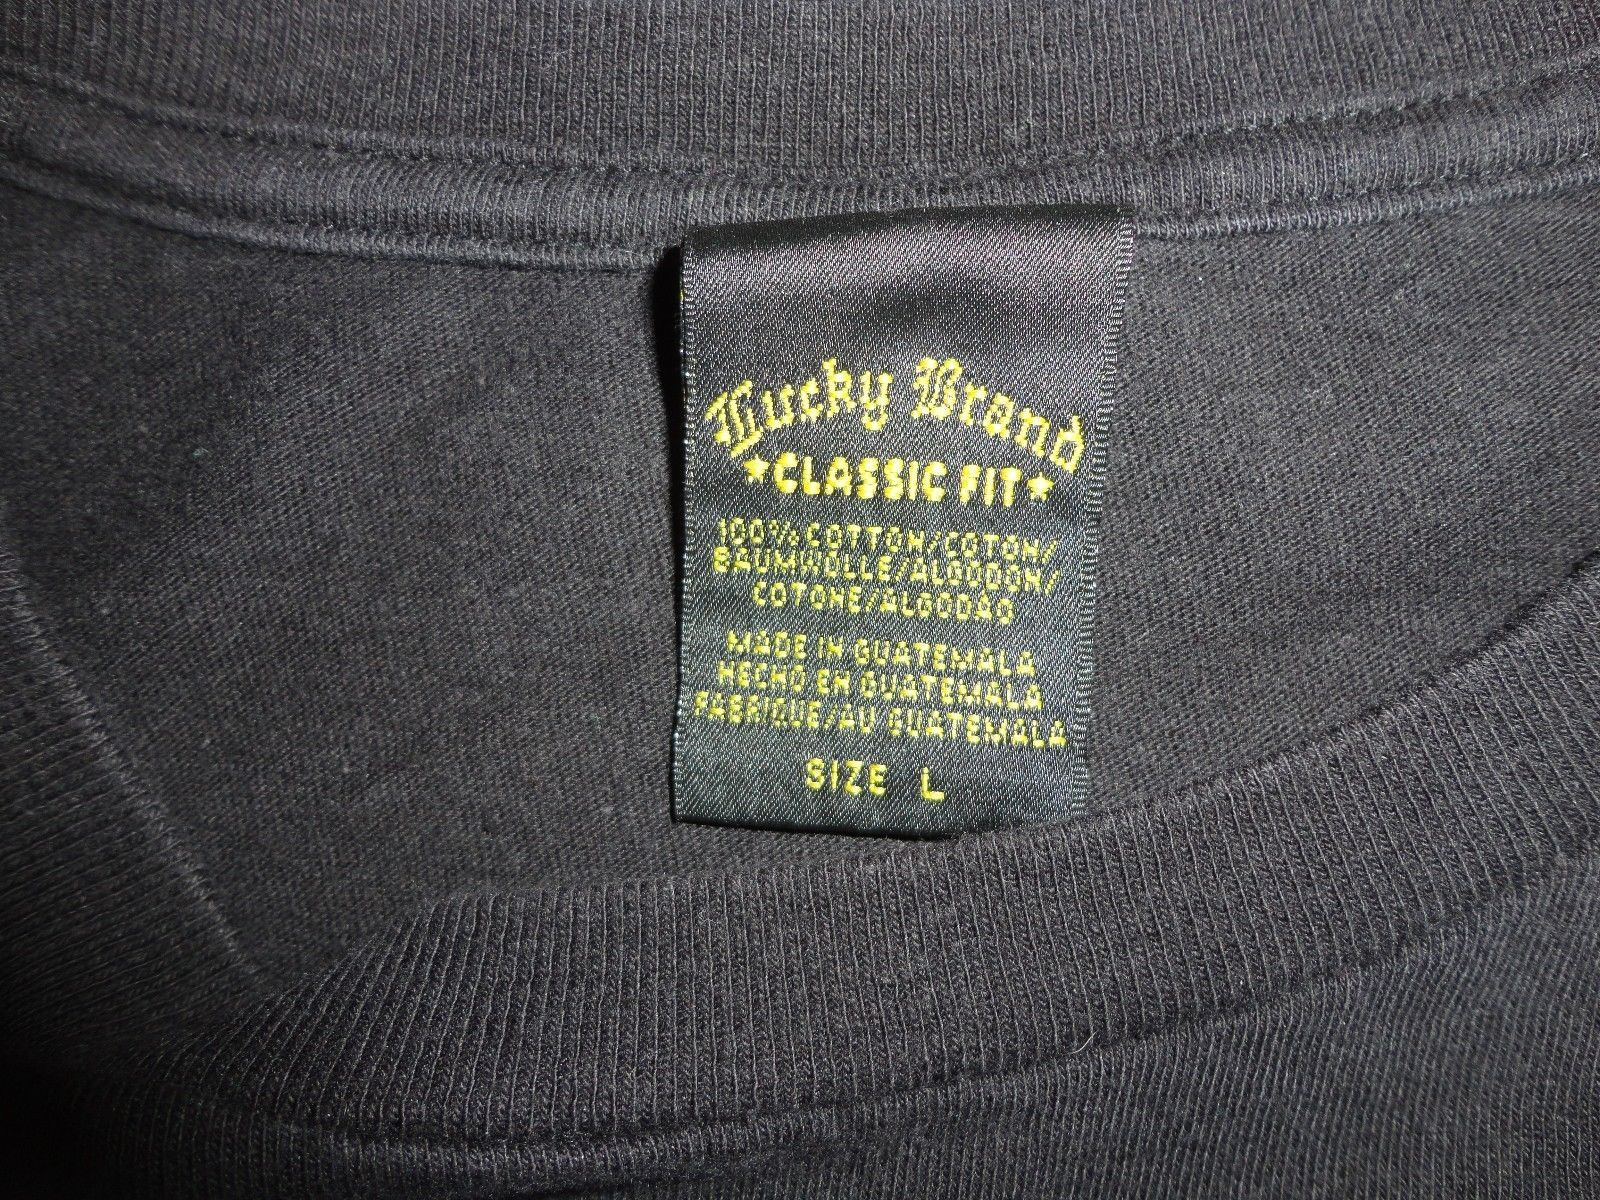 Black LUCKY BRAND Dungarees Los Angeles t shirt Adult  L VERY NICE Classic Fit